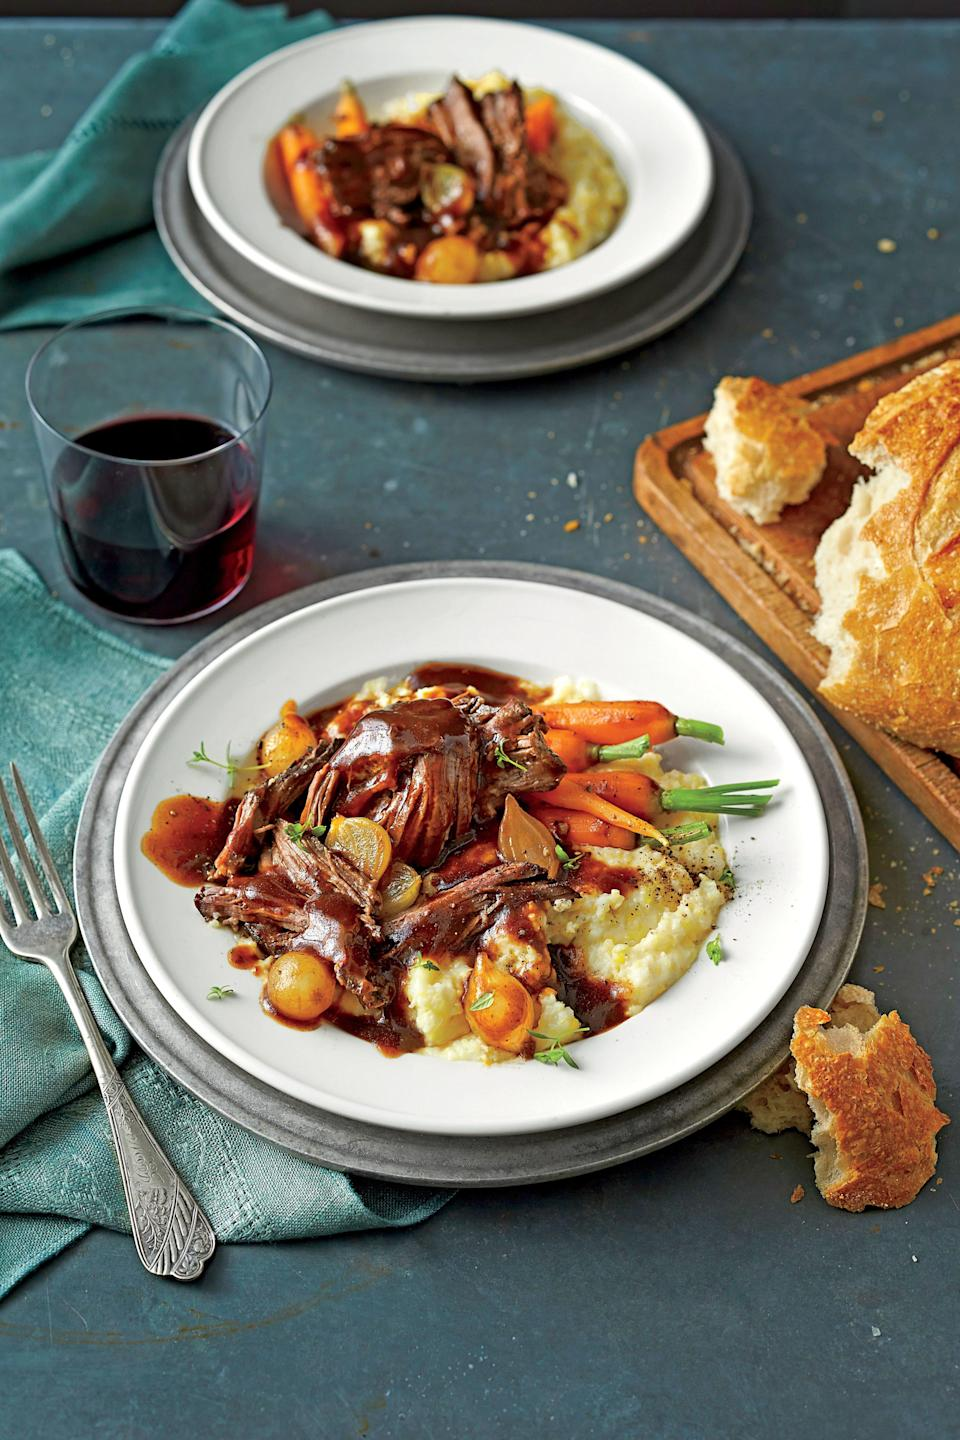 """<p><strong>Recipe: <a href=""""https://www.southernliving.com/syndication/beer-braised-pot-roast"""" rel=""""nofollow noopener"""" target=""""_blank"""" data-ylk=""""slk:Beer-Braised Pot Roast"""" class=""""link rapid-noclick-resp"""">Beer-Braised Pot Roast</a></strong></p> <p>This is no ordinary pot roast. First, it's rubbed with coffee. Then it simmers in dark stout beer and beef stock, yielding a deeply delicious gravy. Small carrots with tops and pearl onions elevate it further. Just be sure to pile the veggies on top of the beef after all other ingredients are in your cooker, so they'll cook perfectly and keep a vibrant color.</p>"""